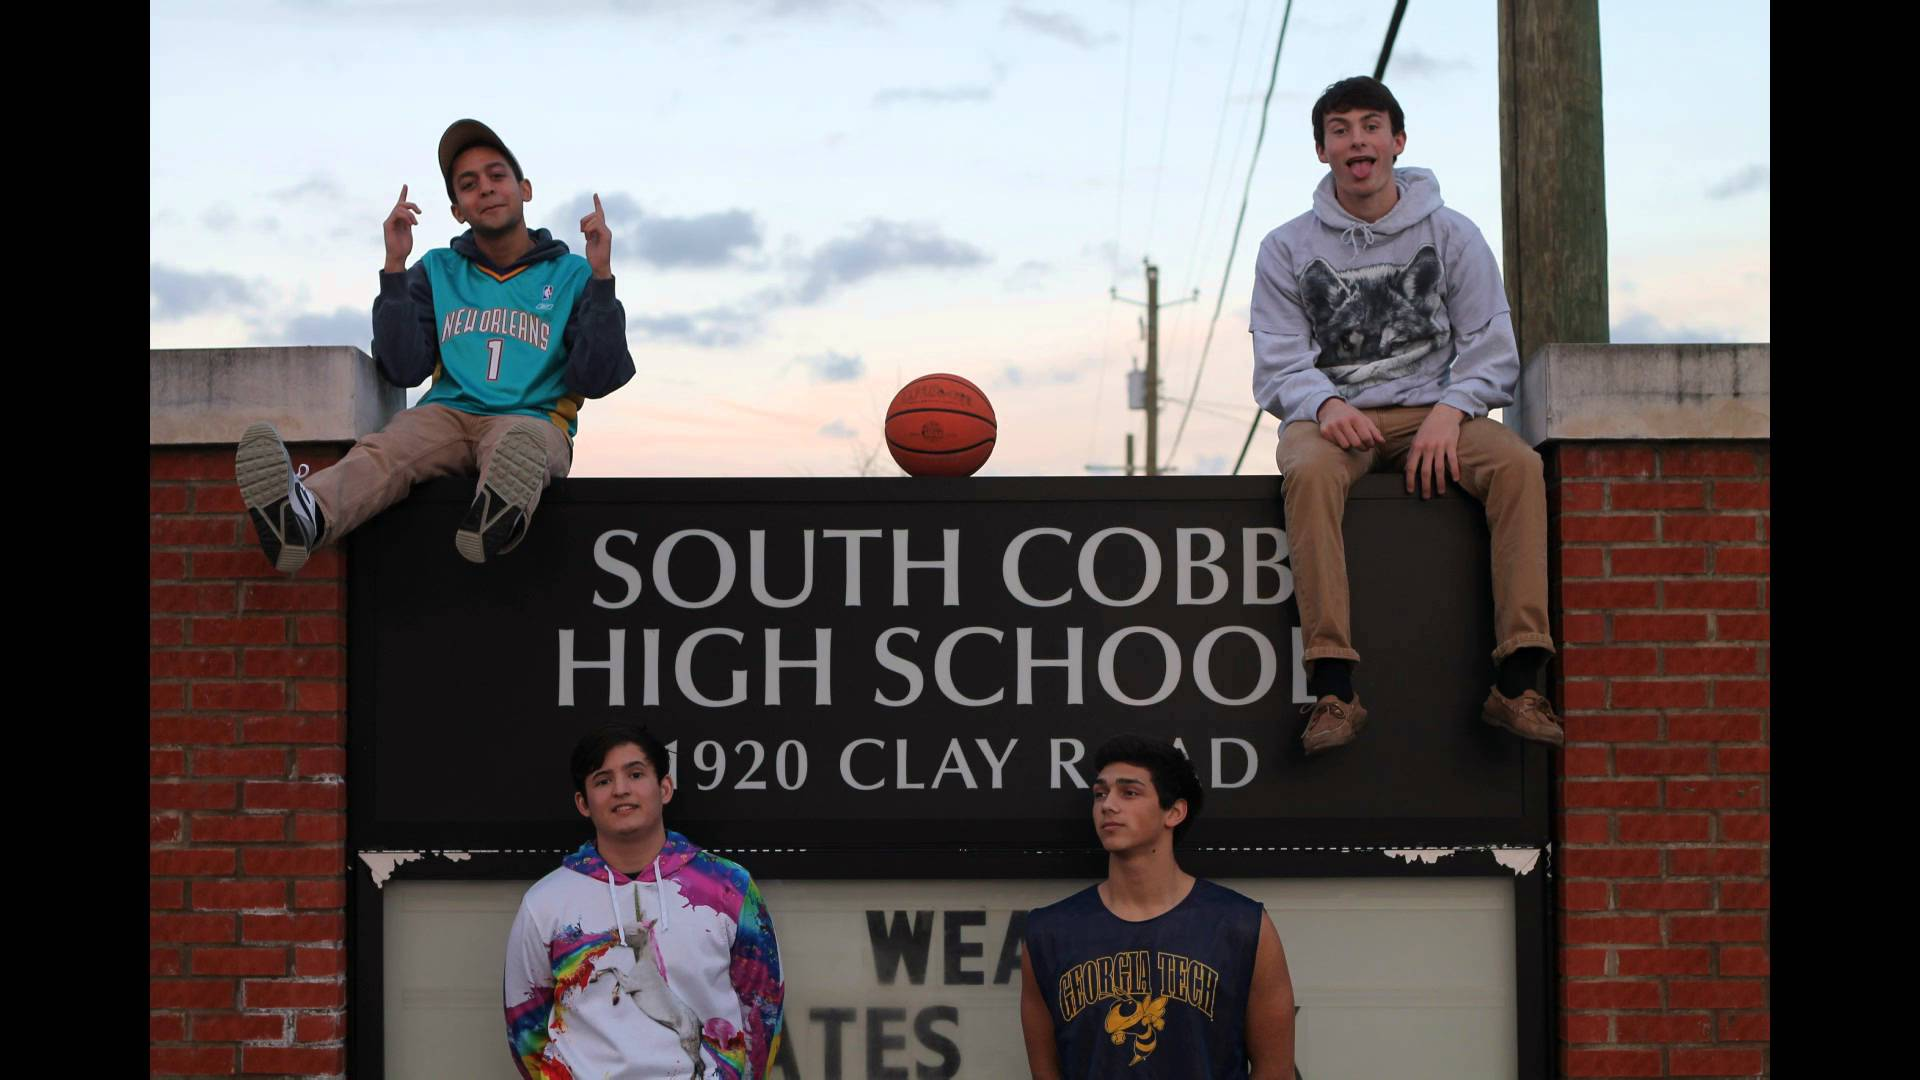 Cobb The South, DWG - South Cobb Diss Track - YouTube